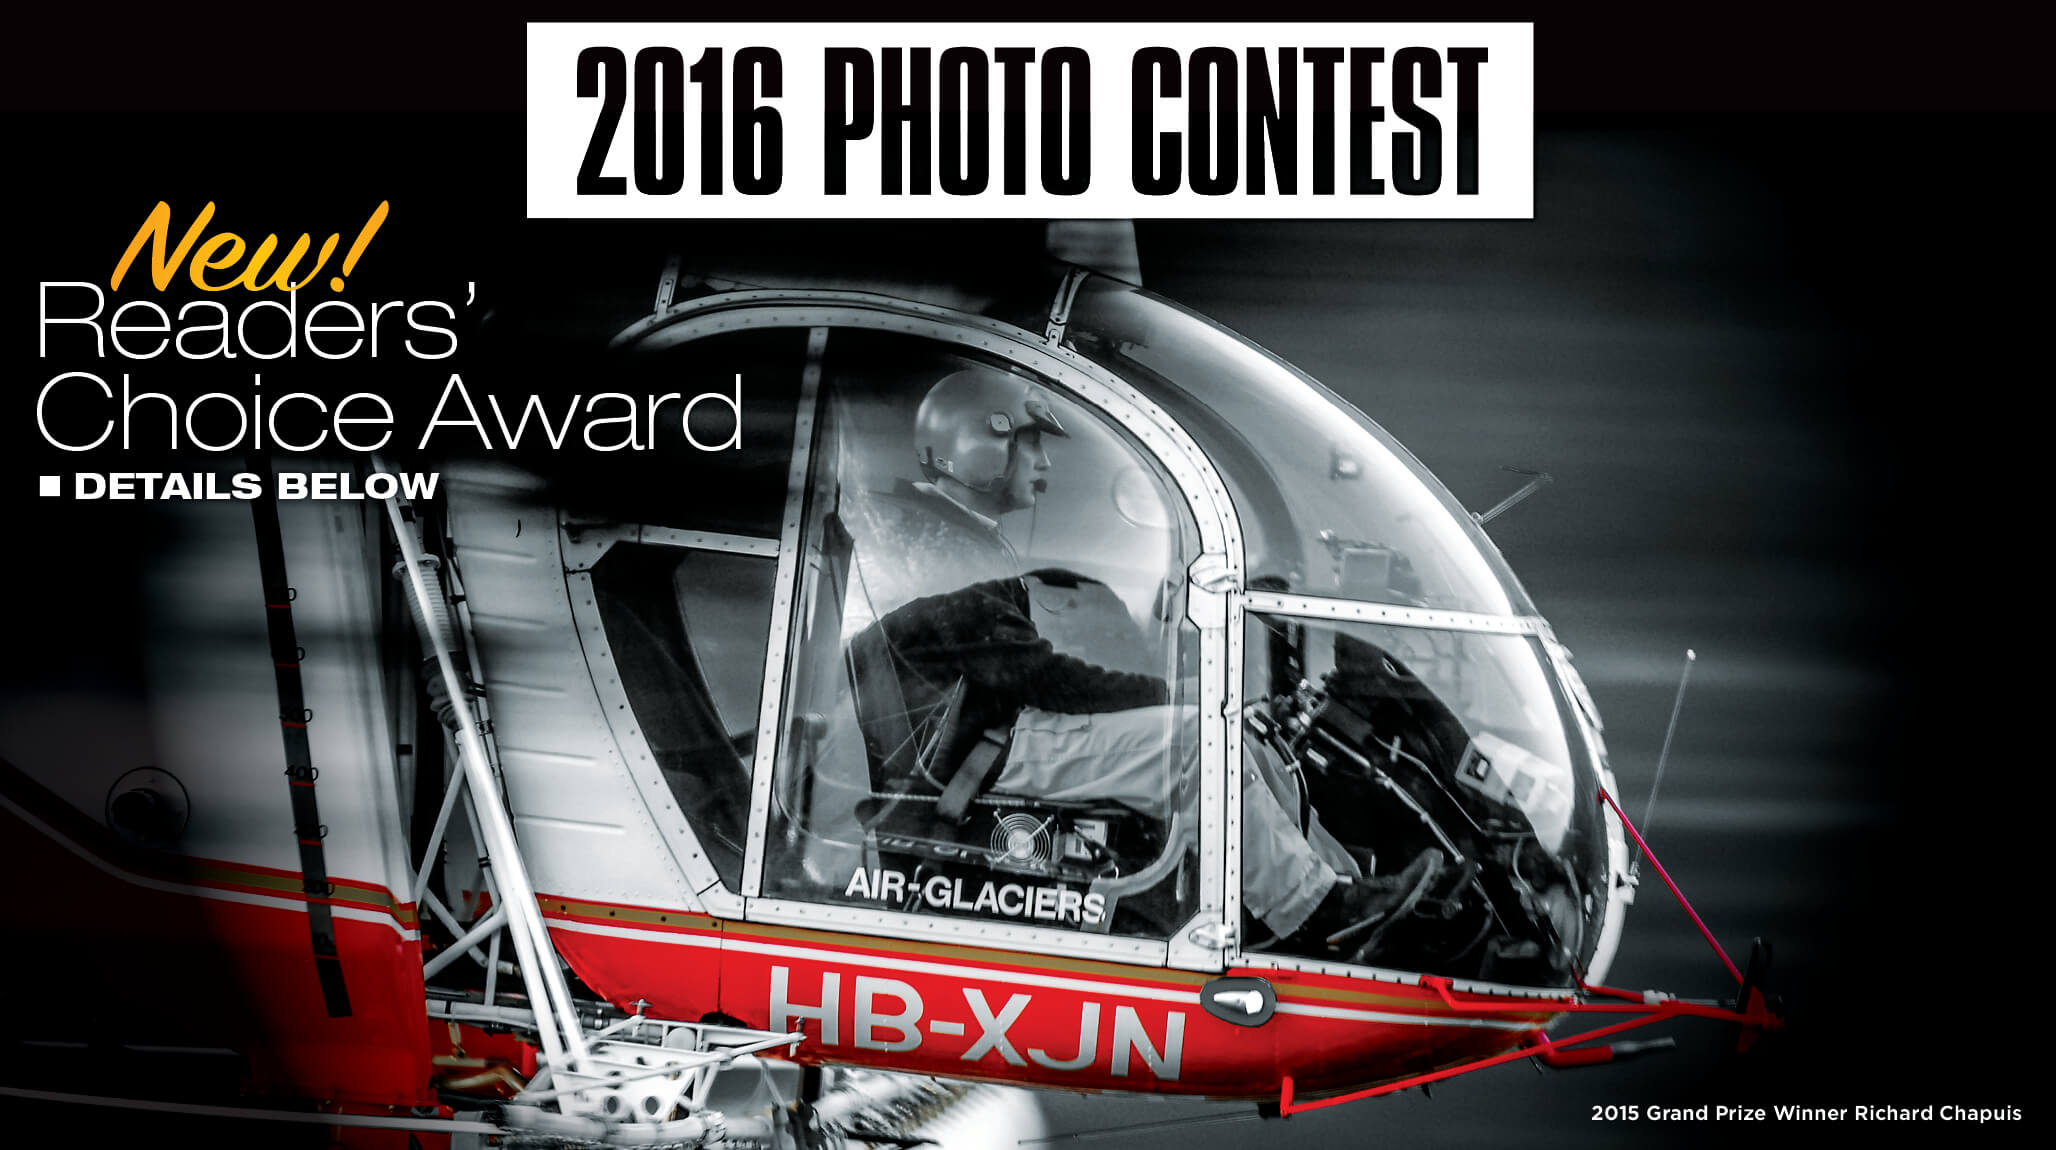 2016 Photo Contest - New! Reader's Choice Award - Details Below